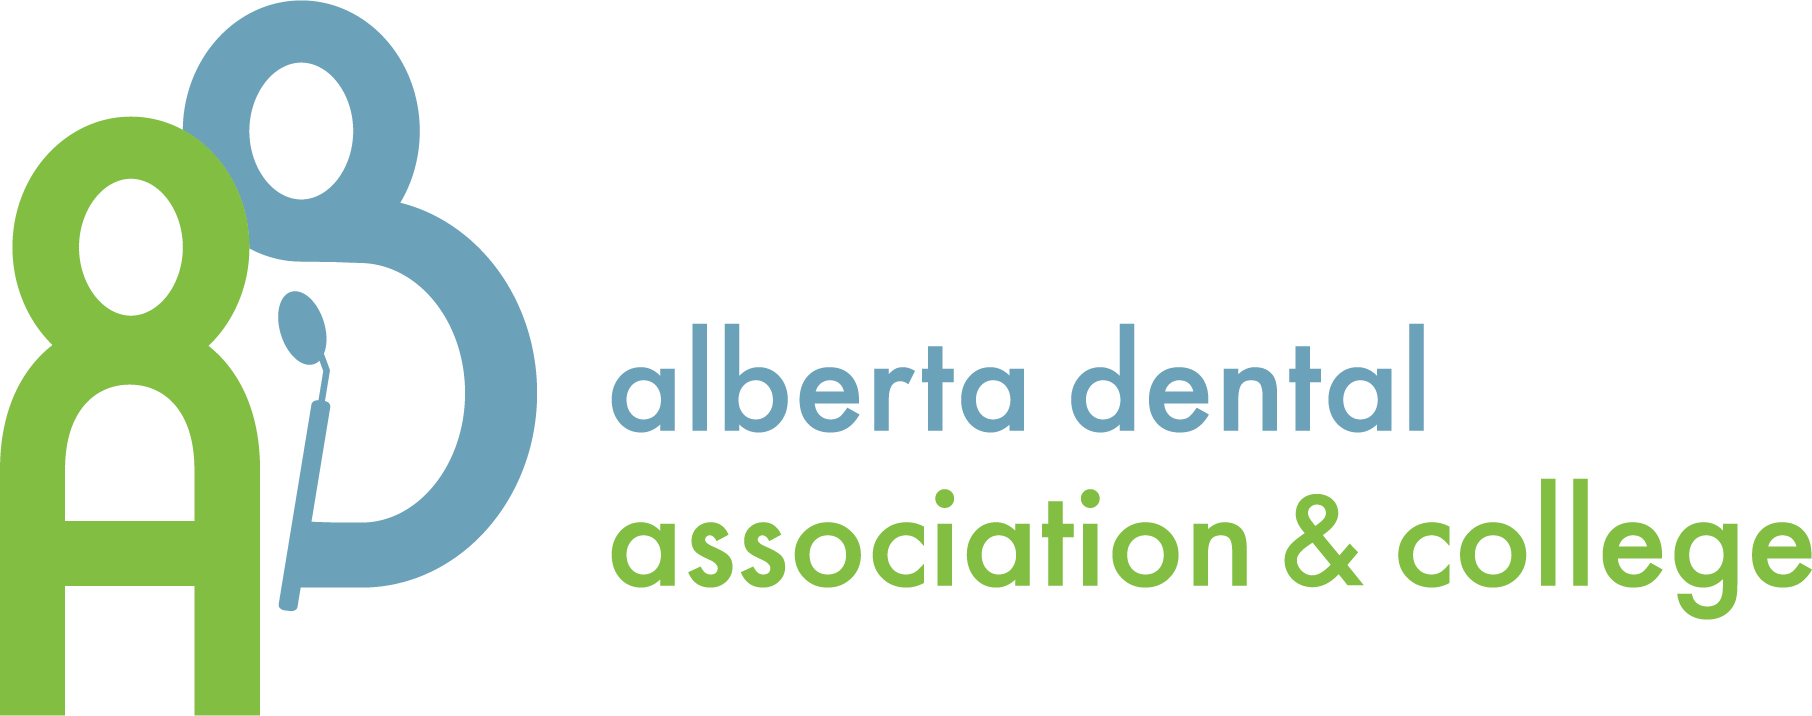 Alberta Dental Association + College Logo